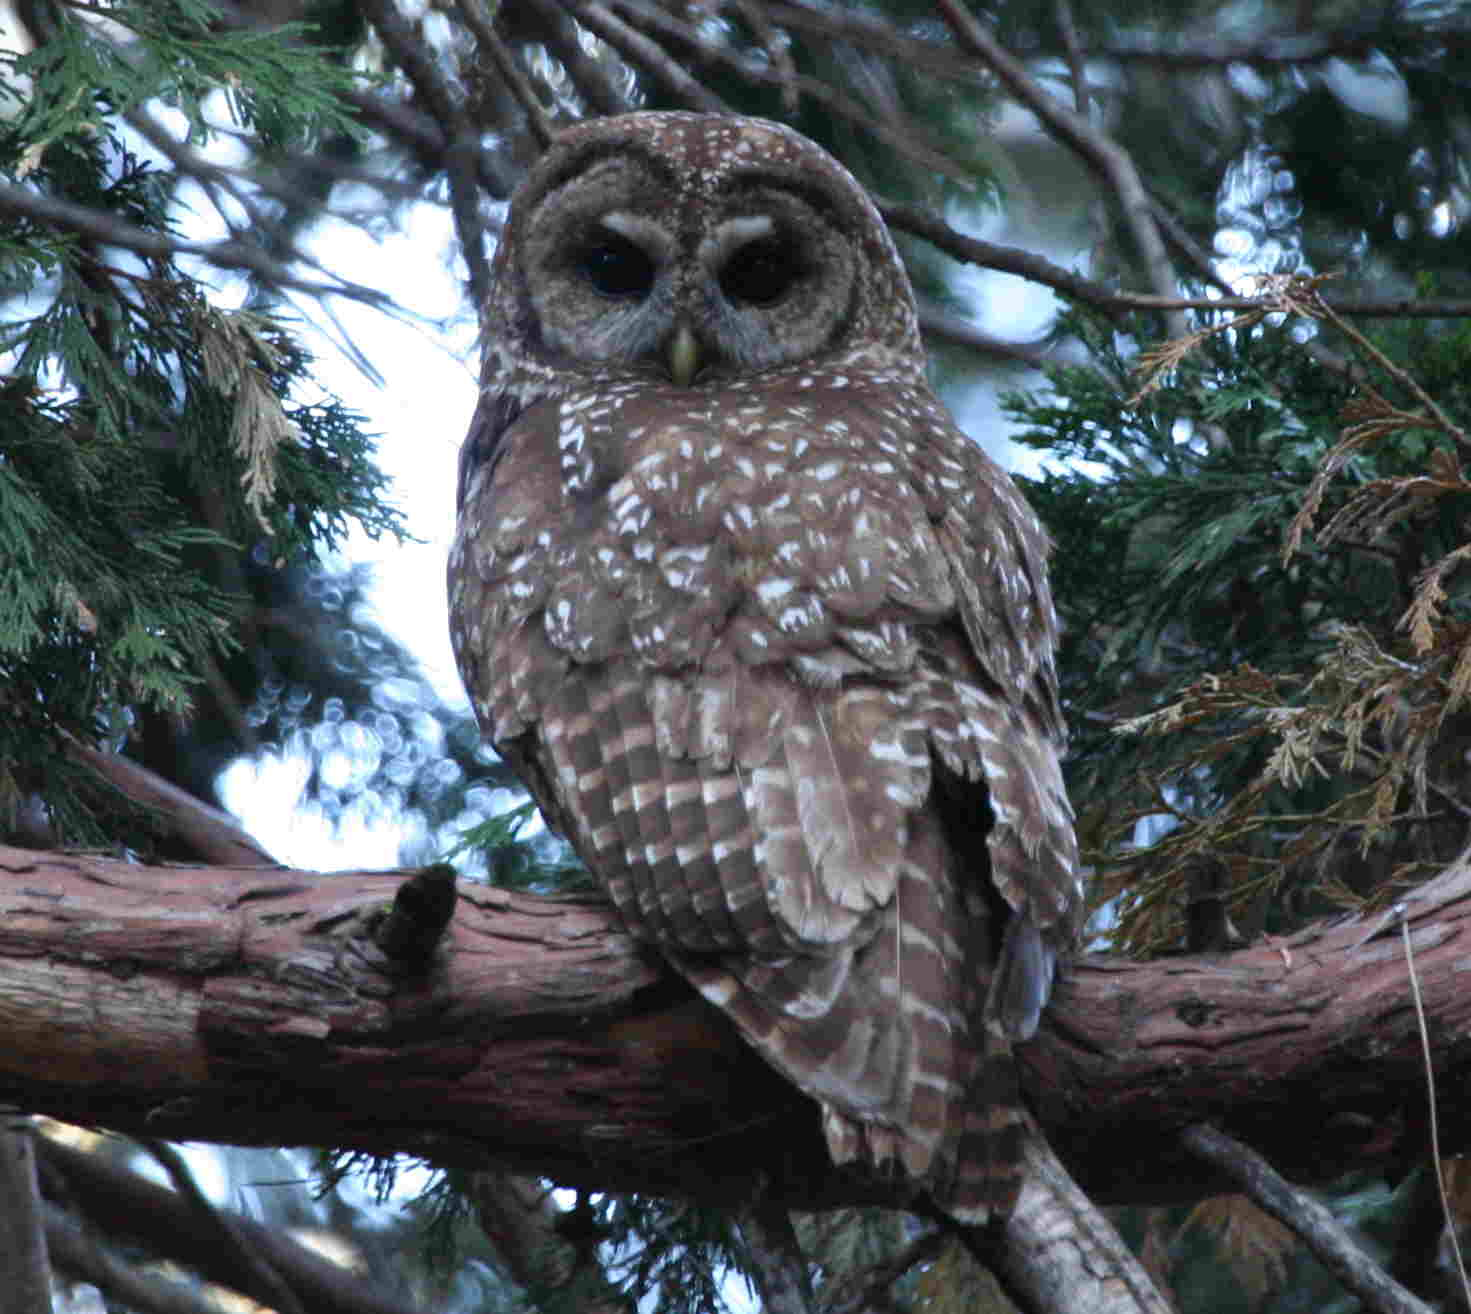 the spotted owl the forests products industry When the owl was listed as a threatened species in the summer of 1990, it was seen not just as a way to halt the decline in owl populations but also to end logging in the federal old-growth forests.